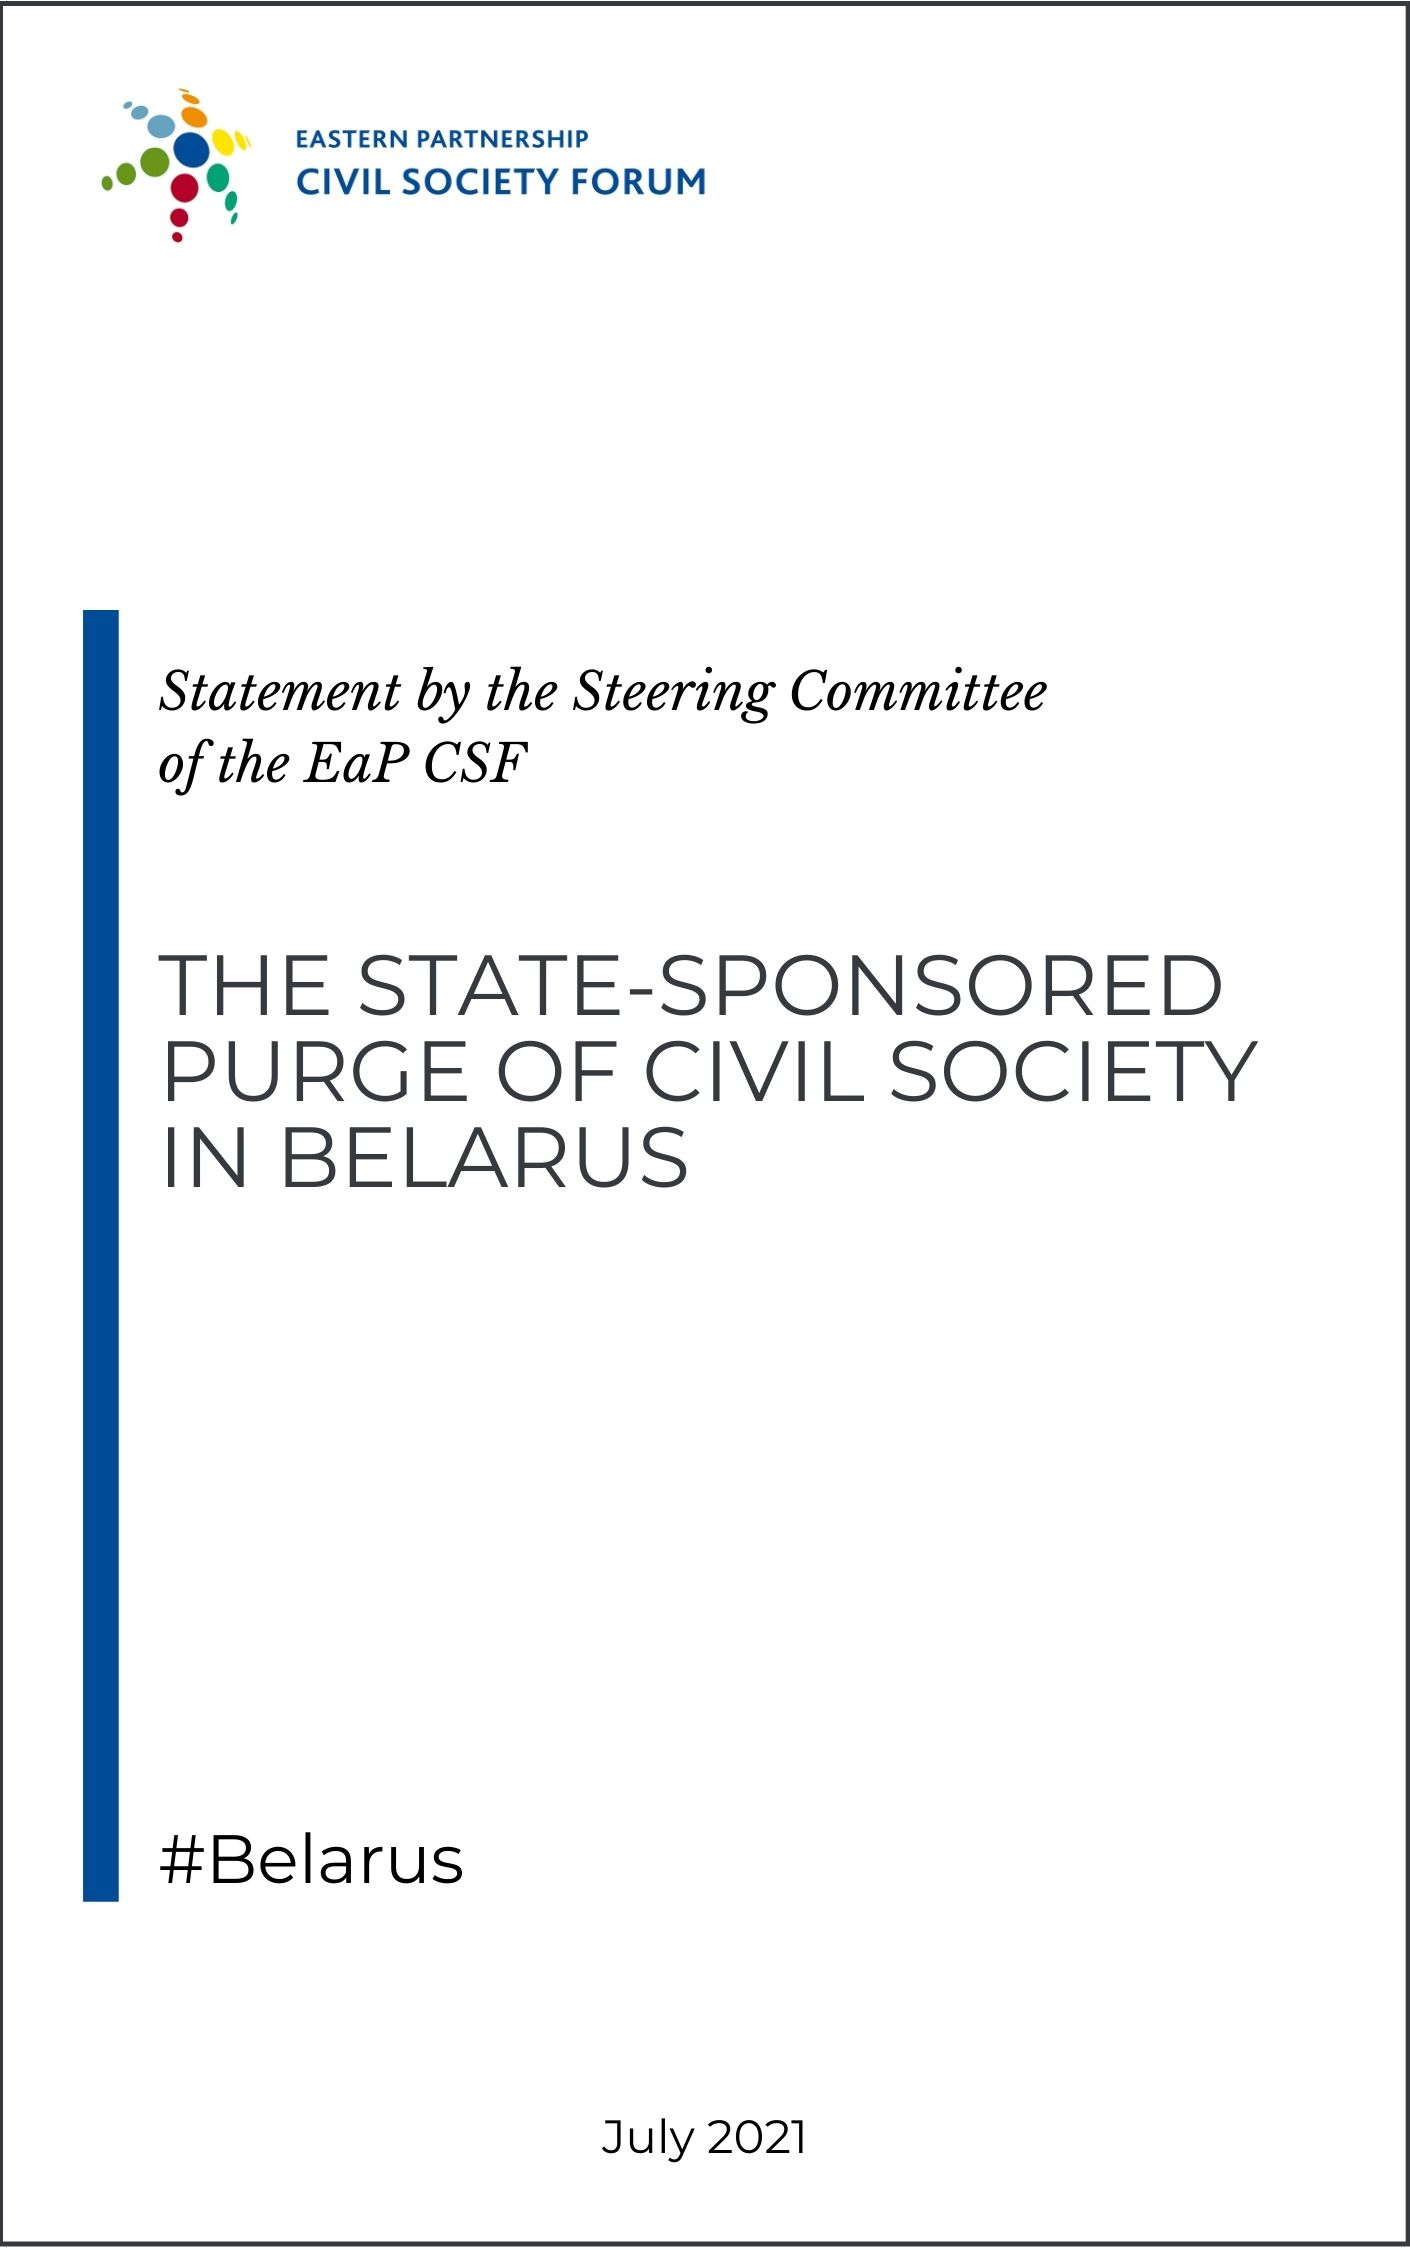 Statement on the state-sponsored purge of civil society in Belarus